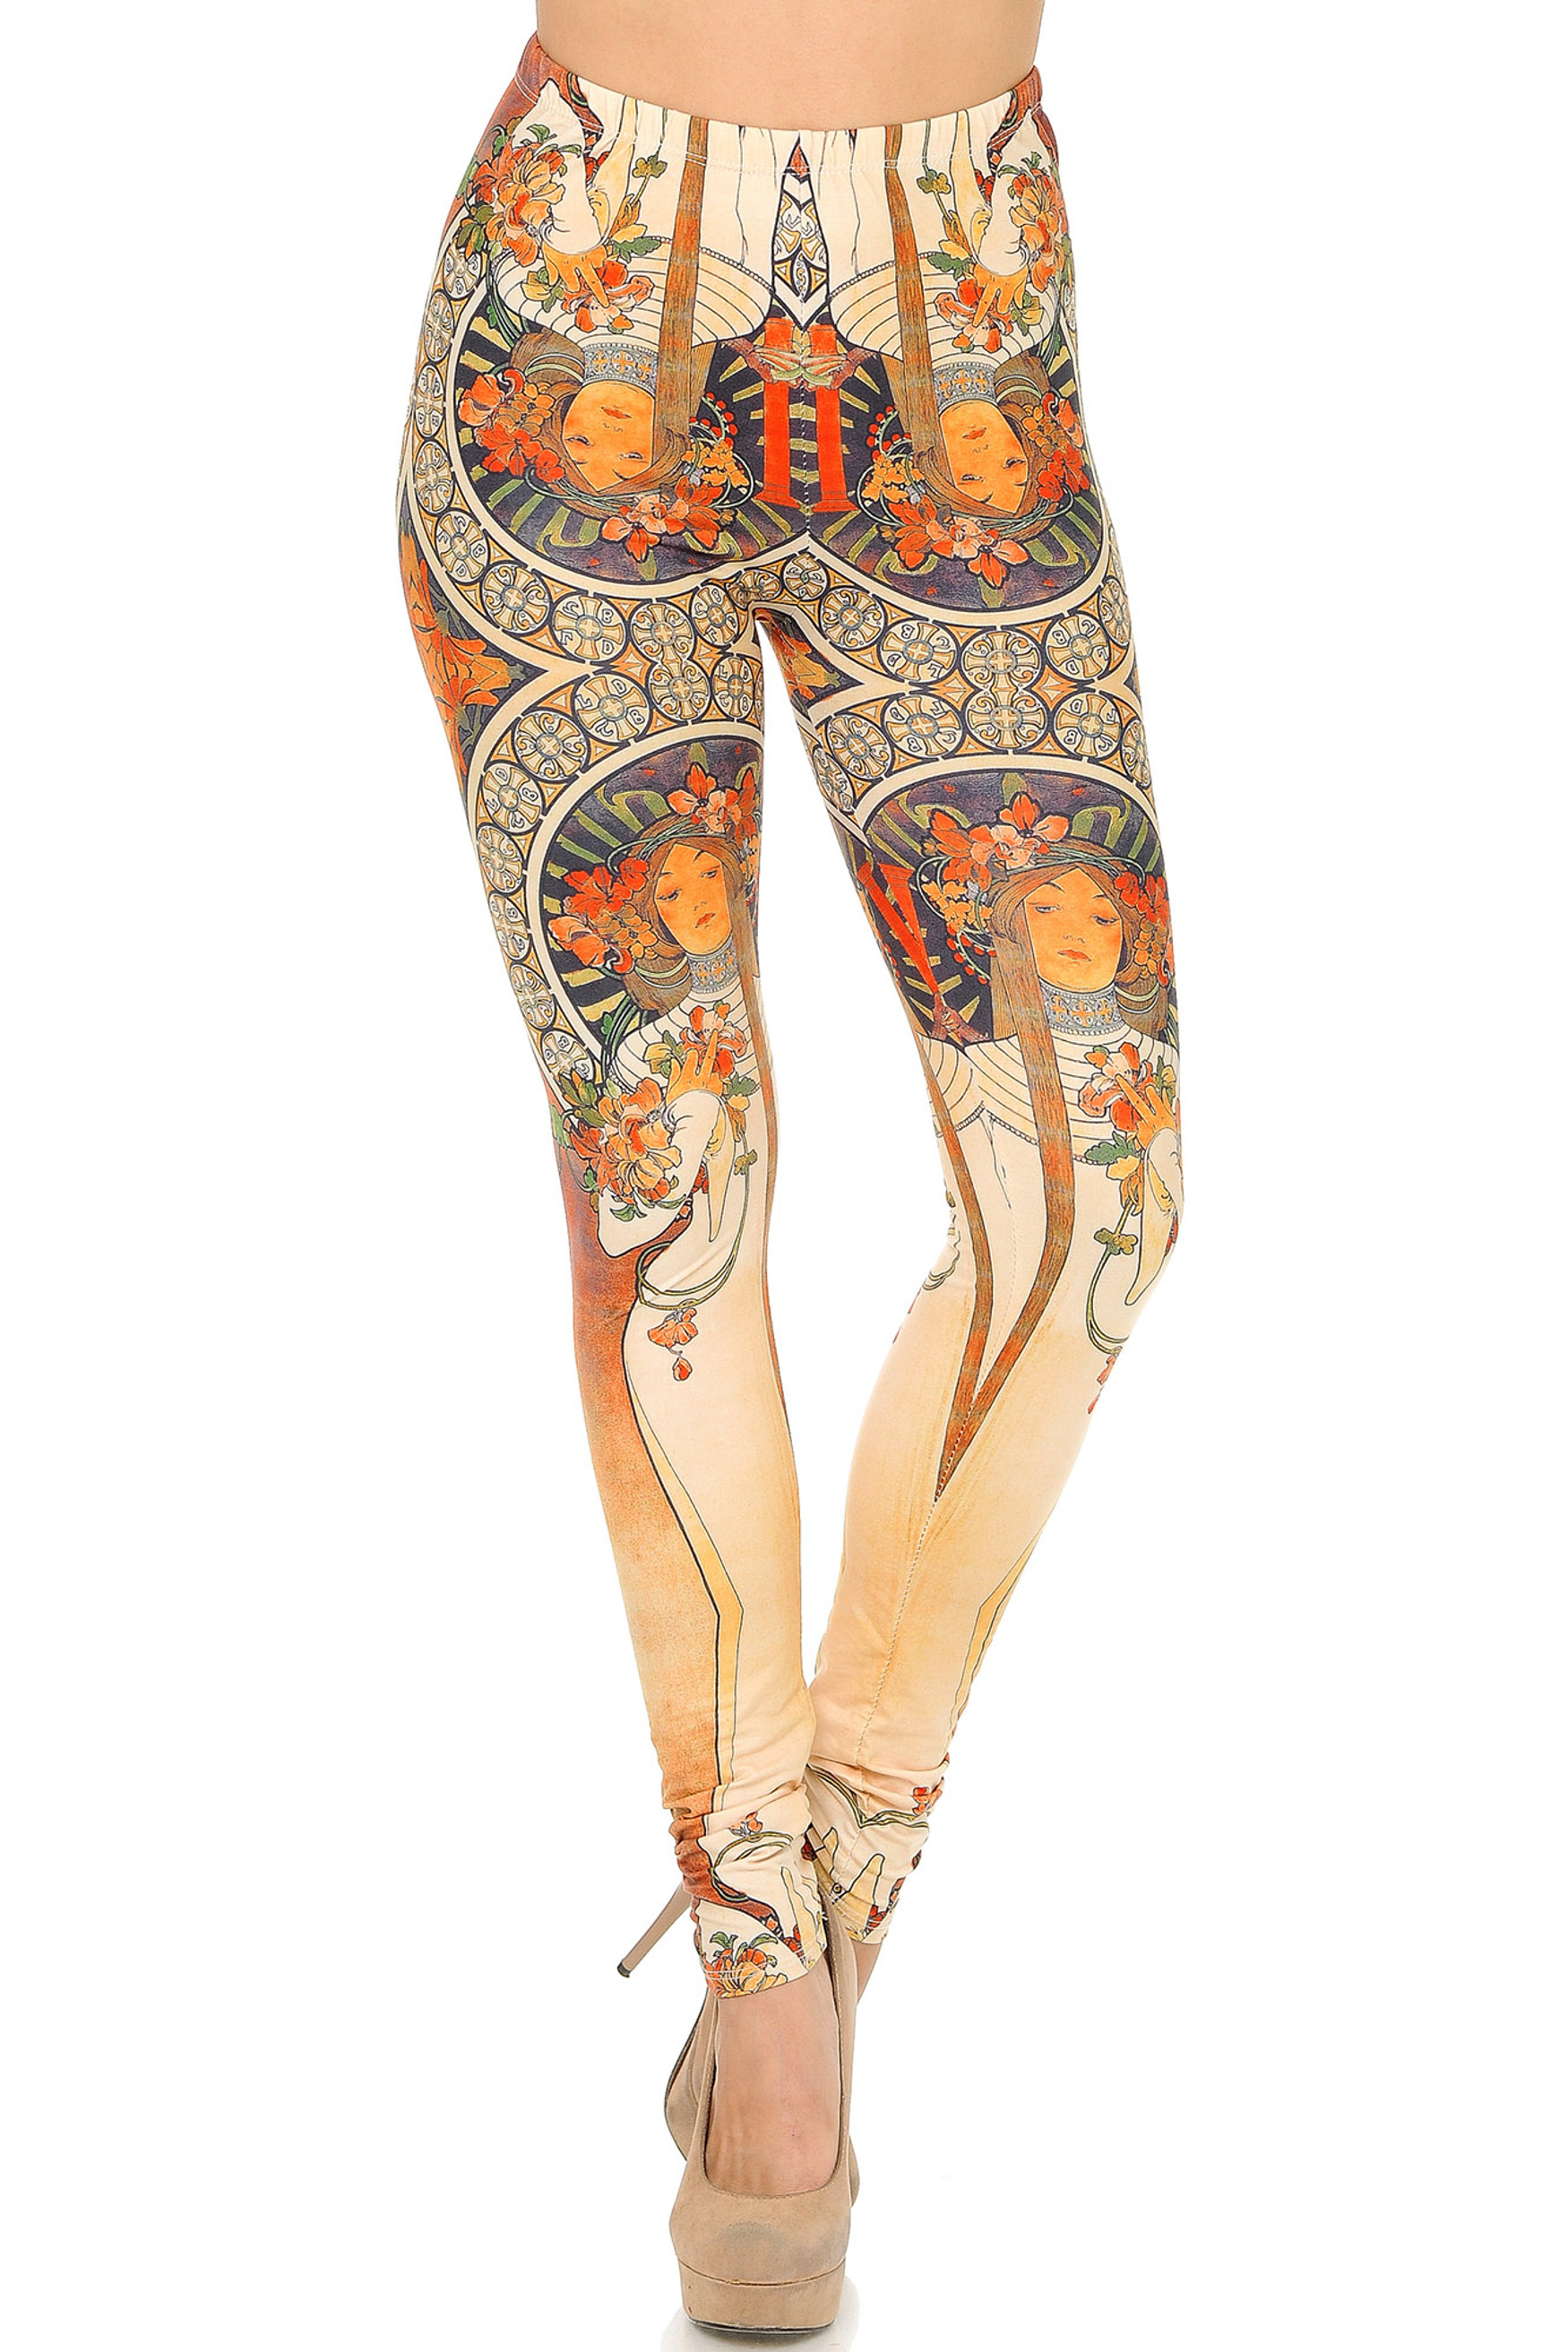 Front side  image of Double Soft Brushed Magical Dryad Leggings